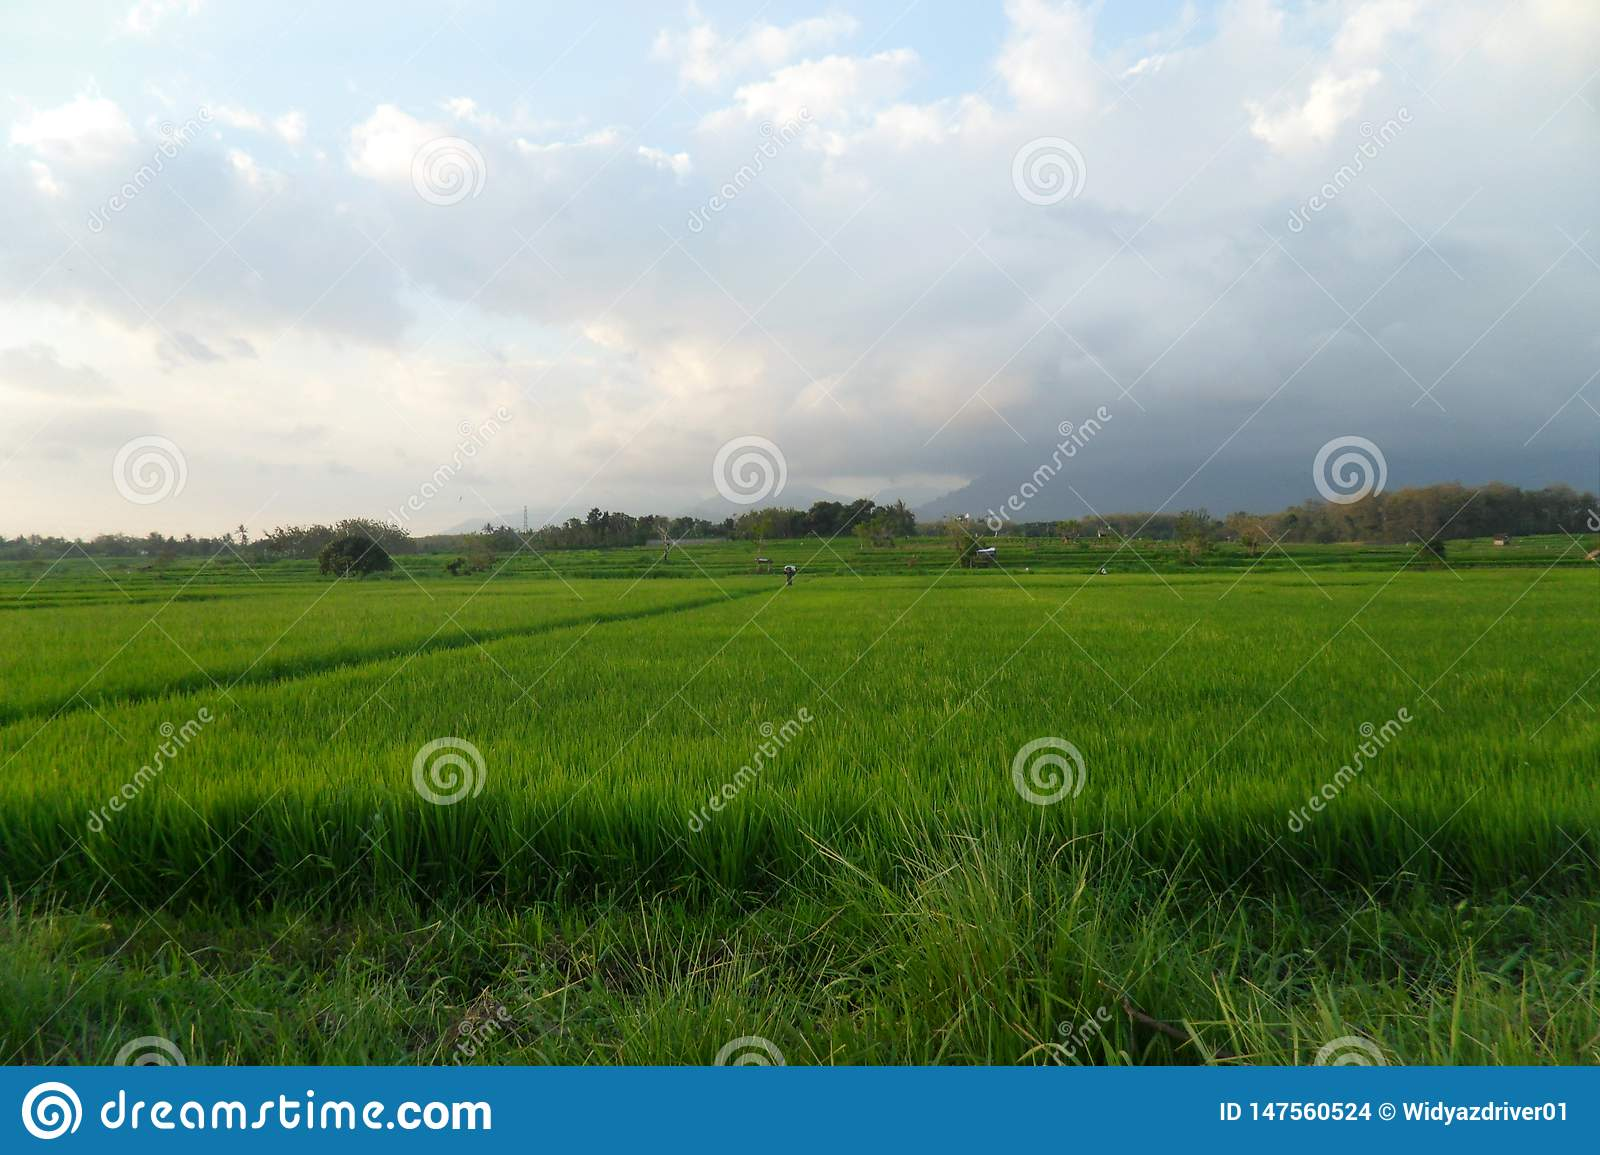 Green rice fields bring happiness